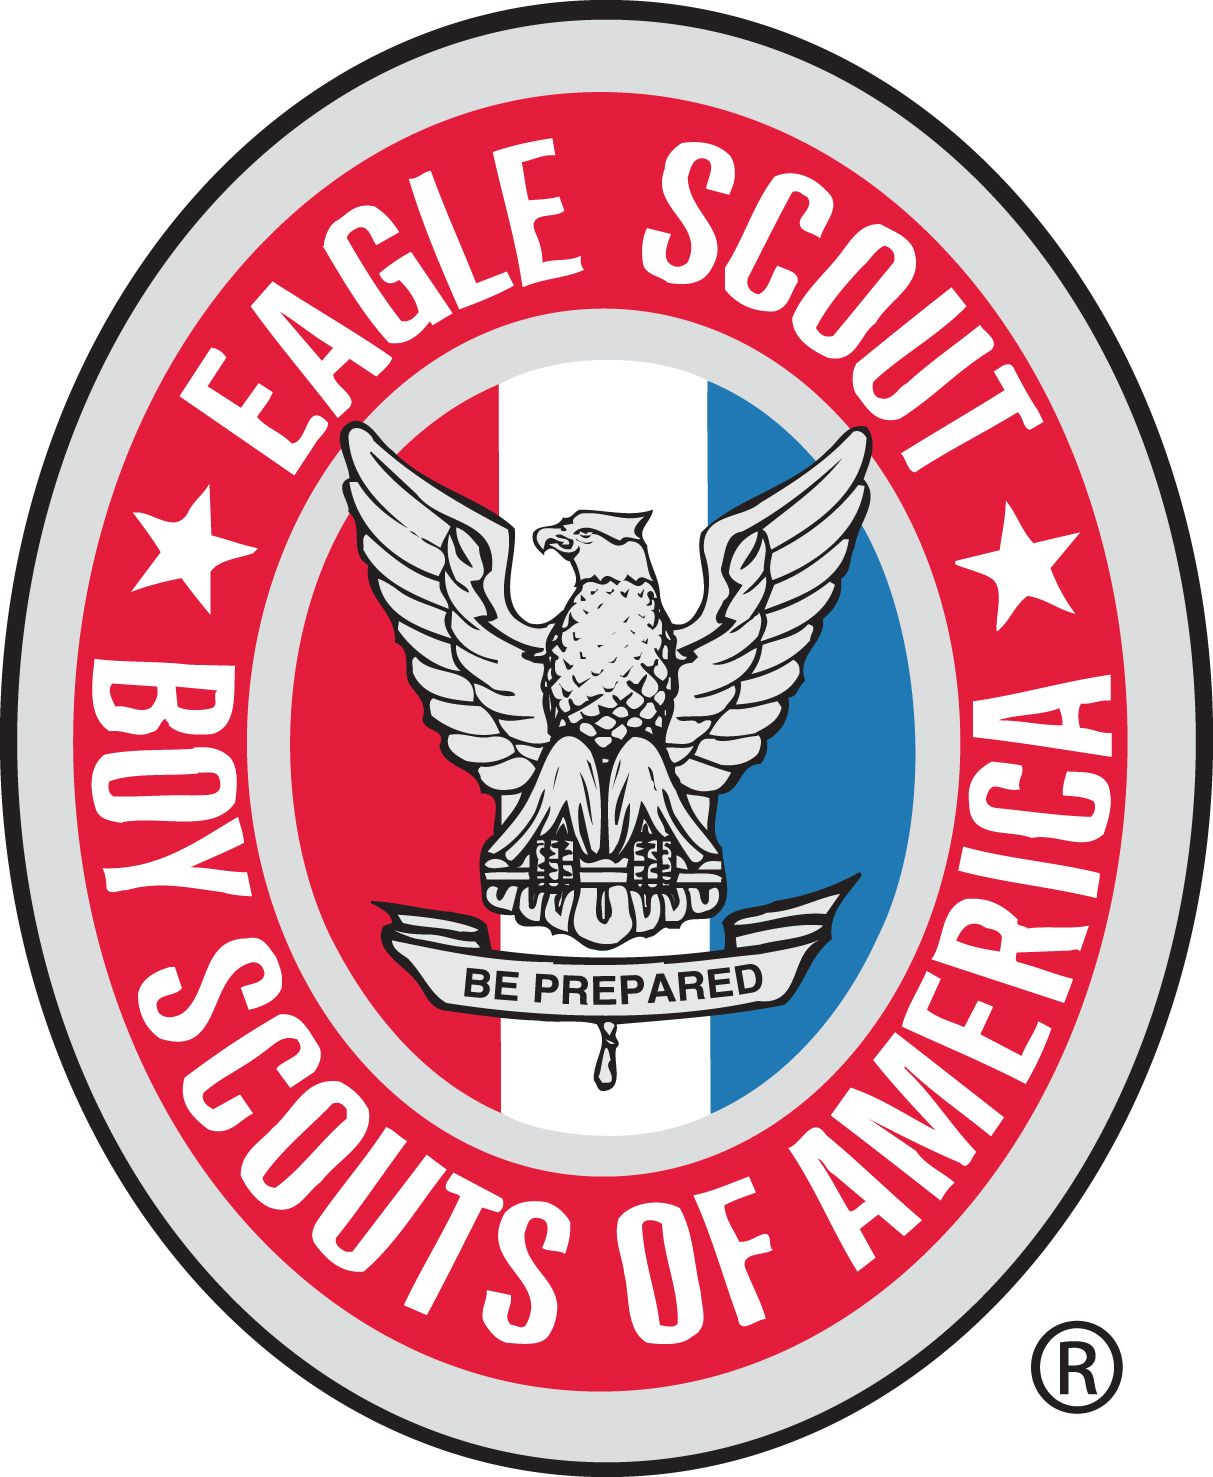 eagle scout clip art eagle scout clip art clip art images rh pinterest co uk eagle scout clip art free background images eagle scout clip art free background images